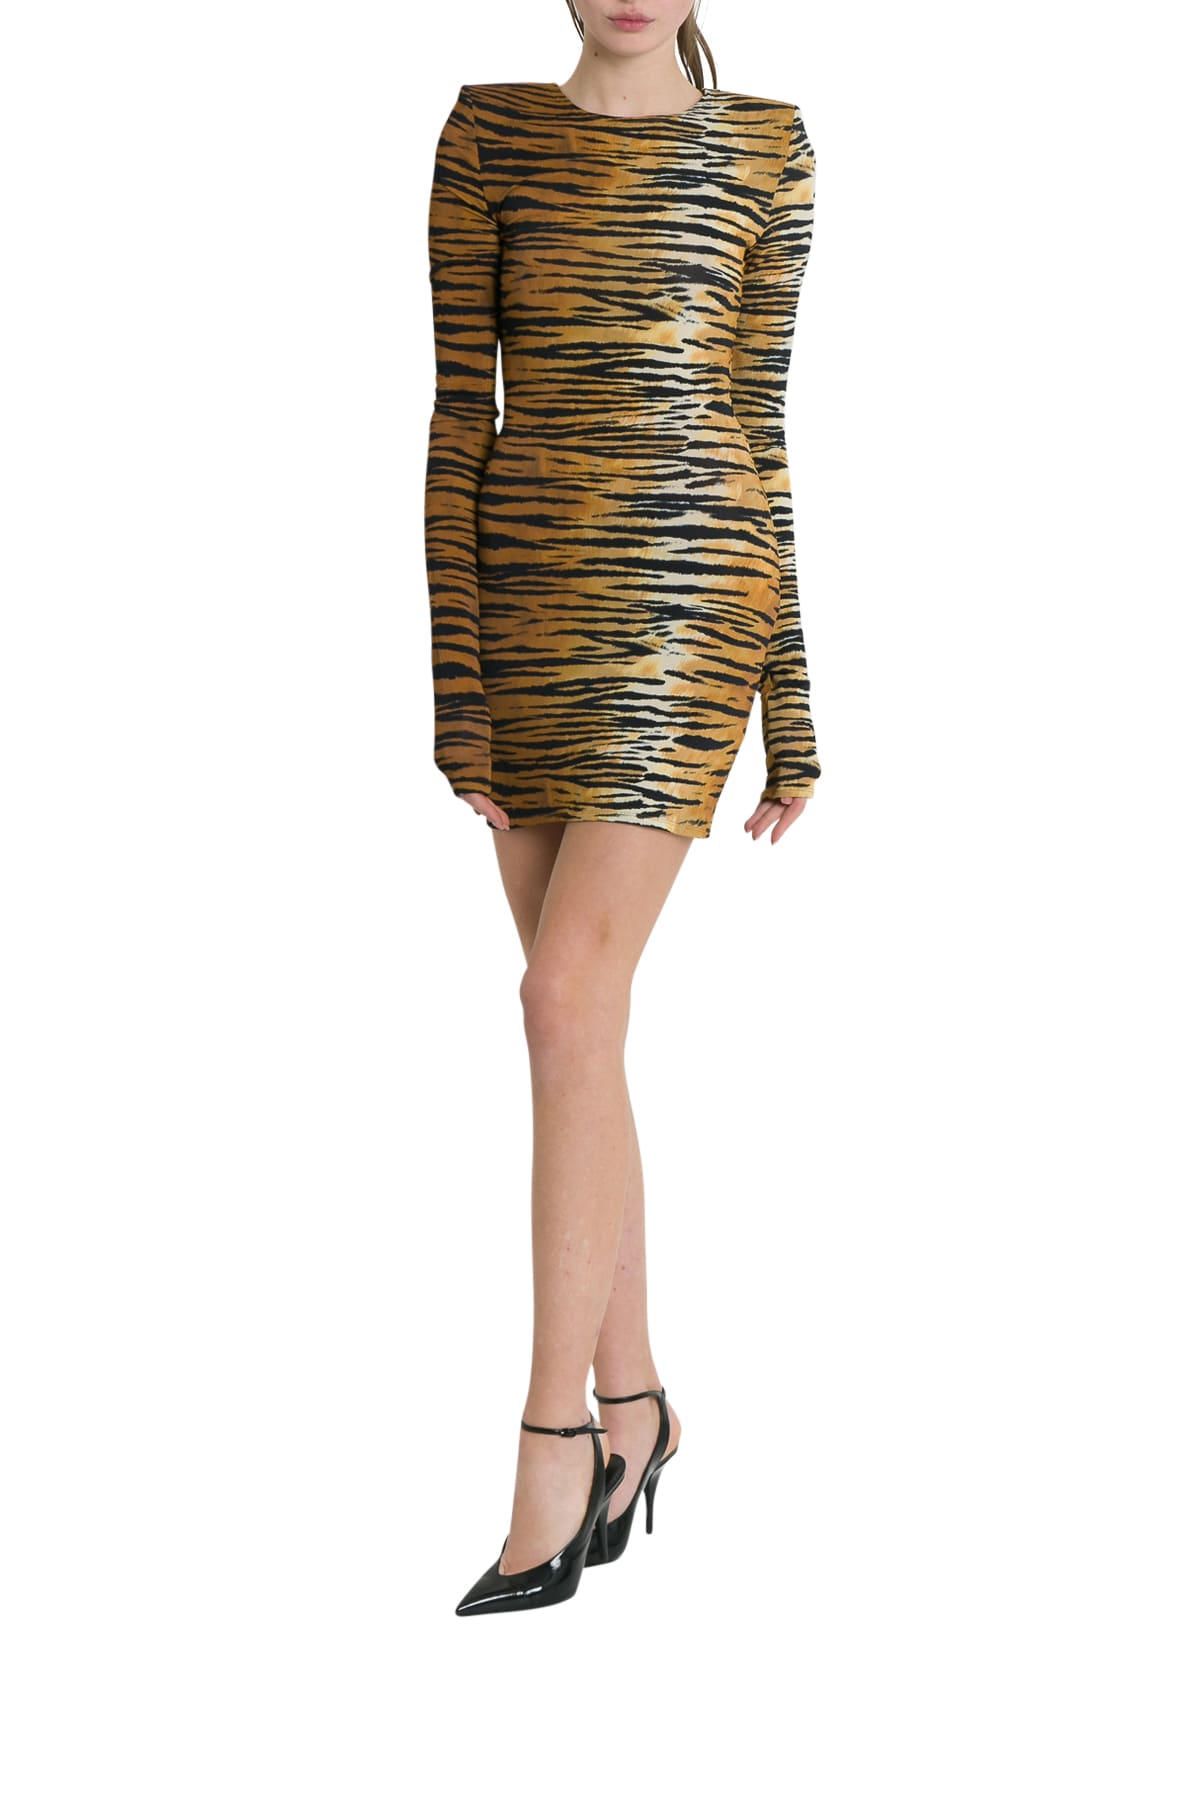 Alexandre Vauthier Tiger Printed Mini Dress